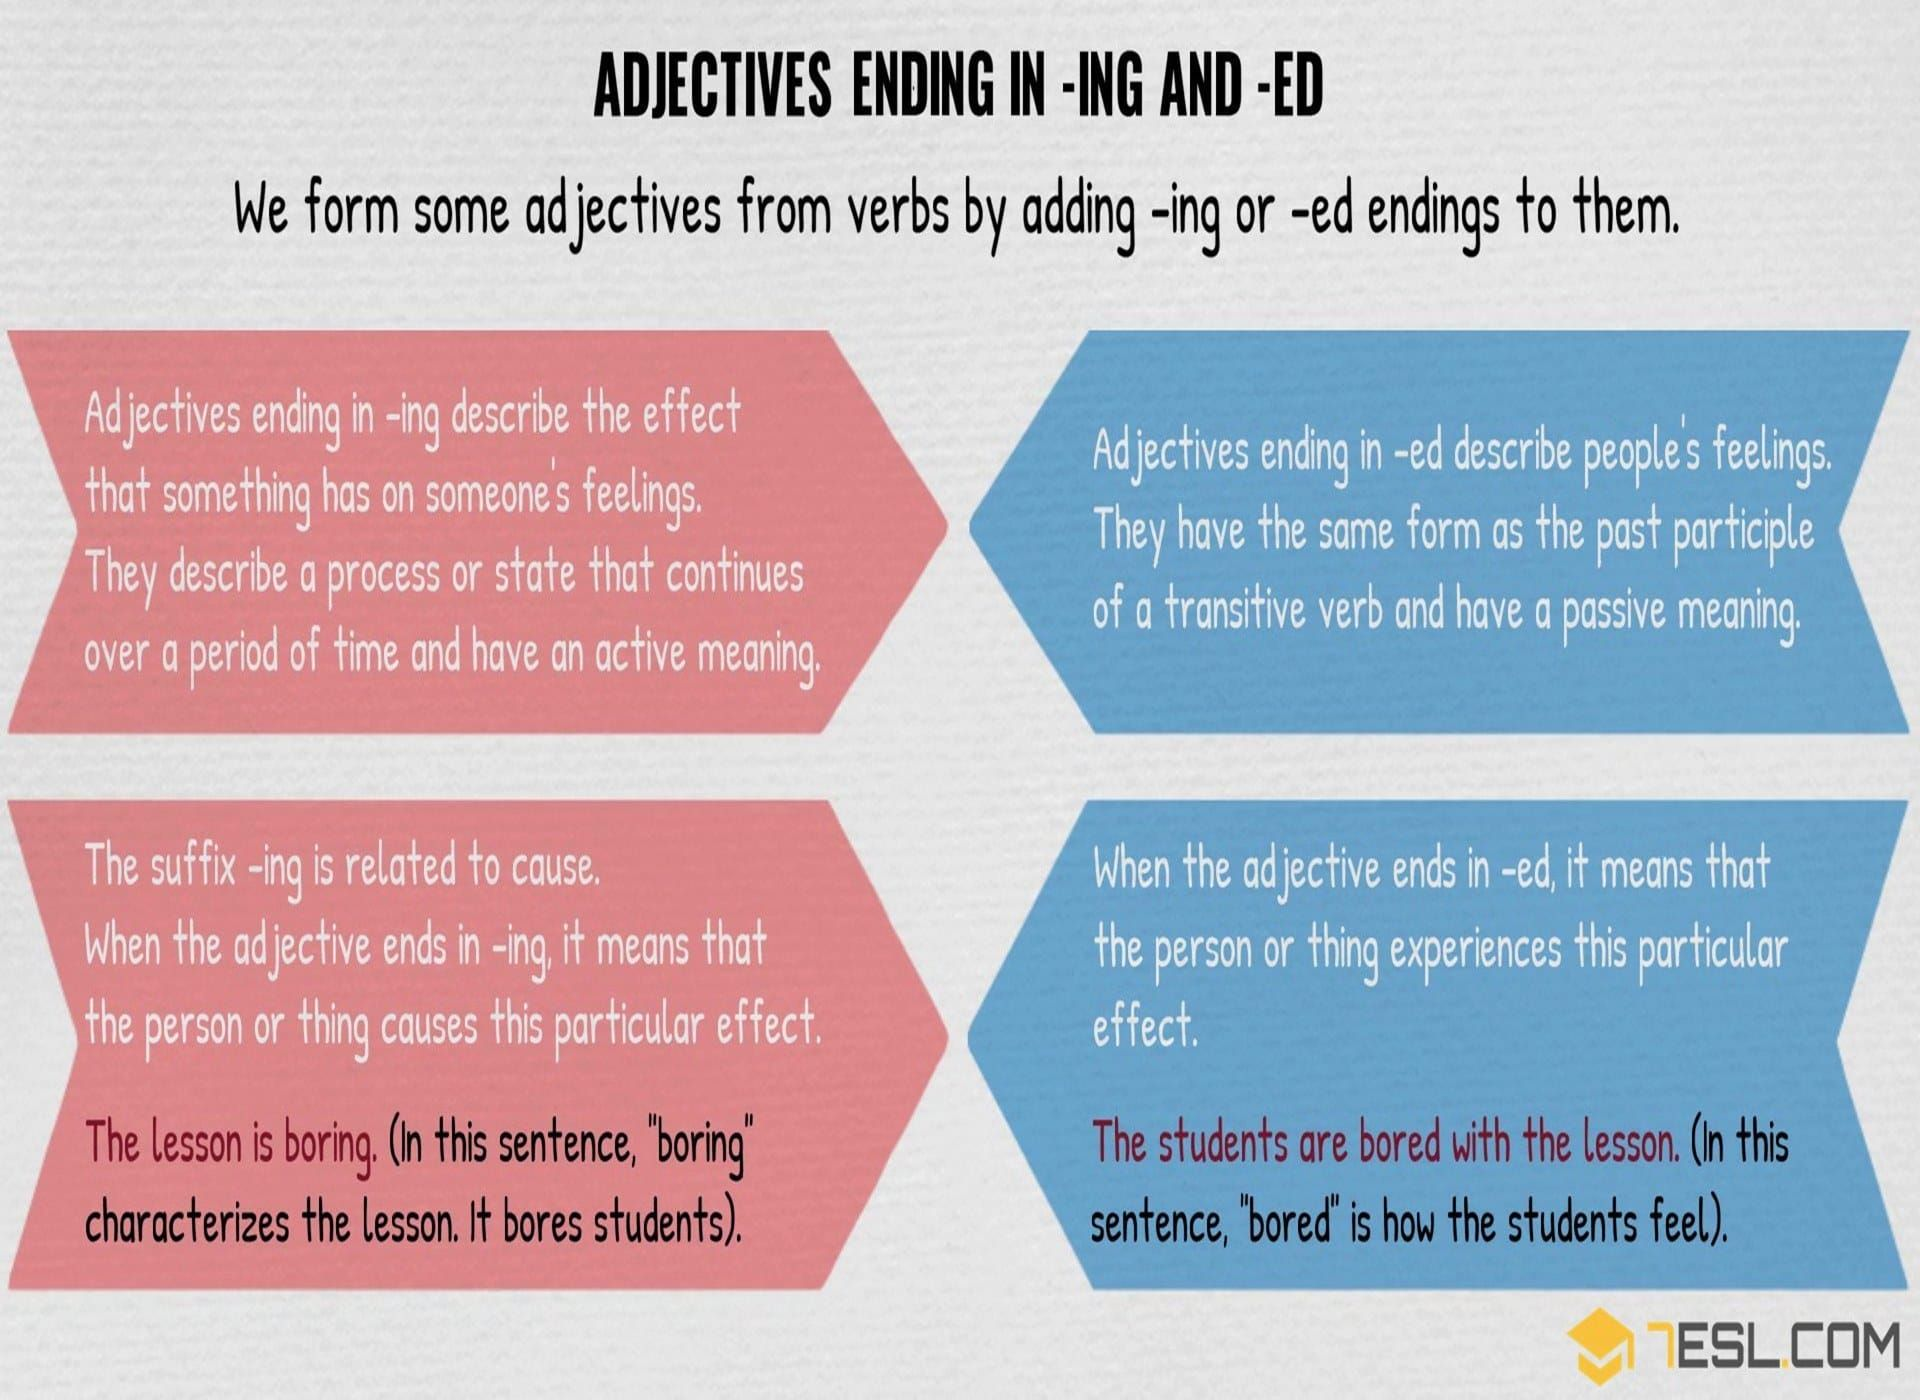 Adjectives Ending In Ed And Ing Useful List Great Examples 7esl Adjectives English Writing Learn English [ 1400 x 1920 Pixel ]